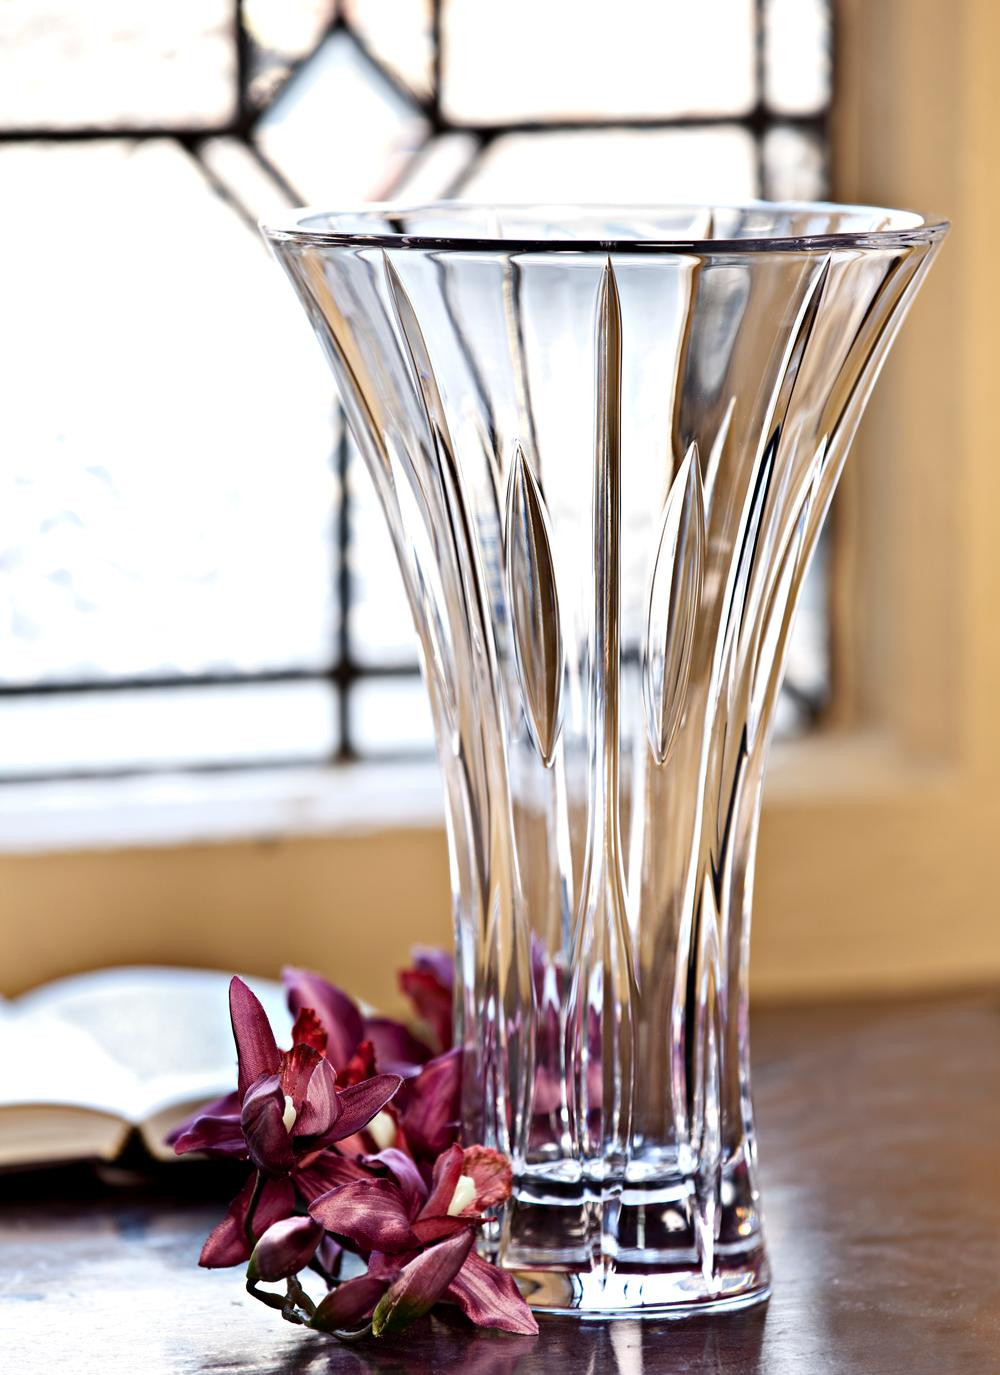 marquis by waterford vase sparkle of waterford crystal gifts irish waterford crystal collection inside marquis by waterford crystal sheridan flared vases